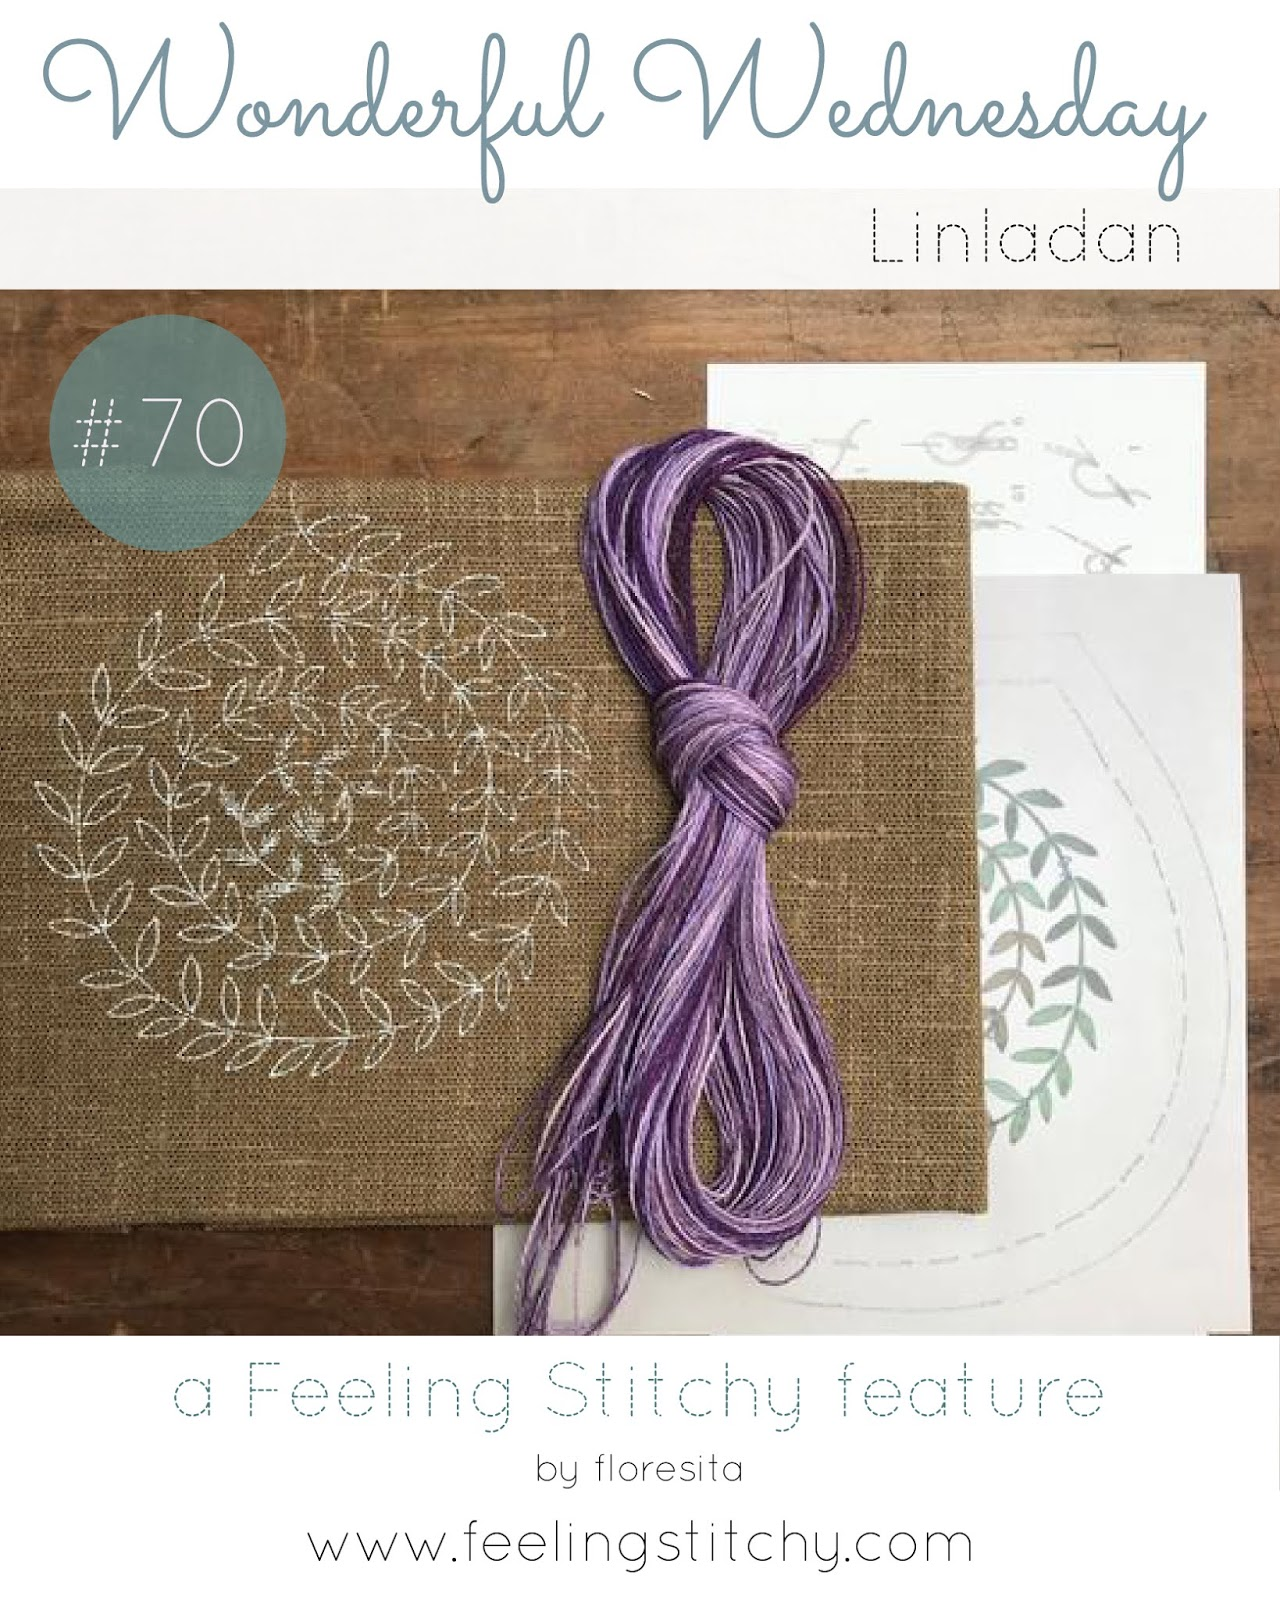 Wonderful Wednesday 70 - Linladan as featured by floresita on Feeling Stitchy